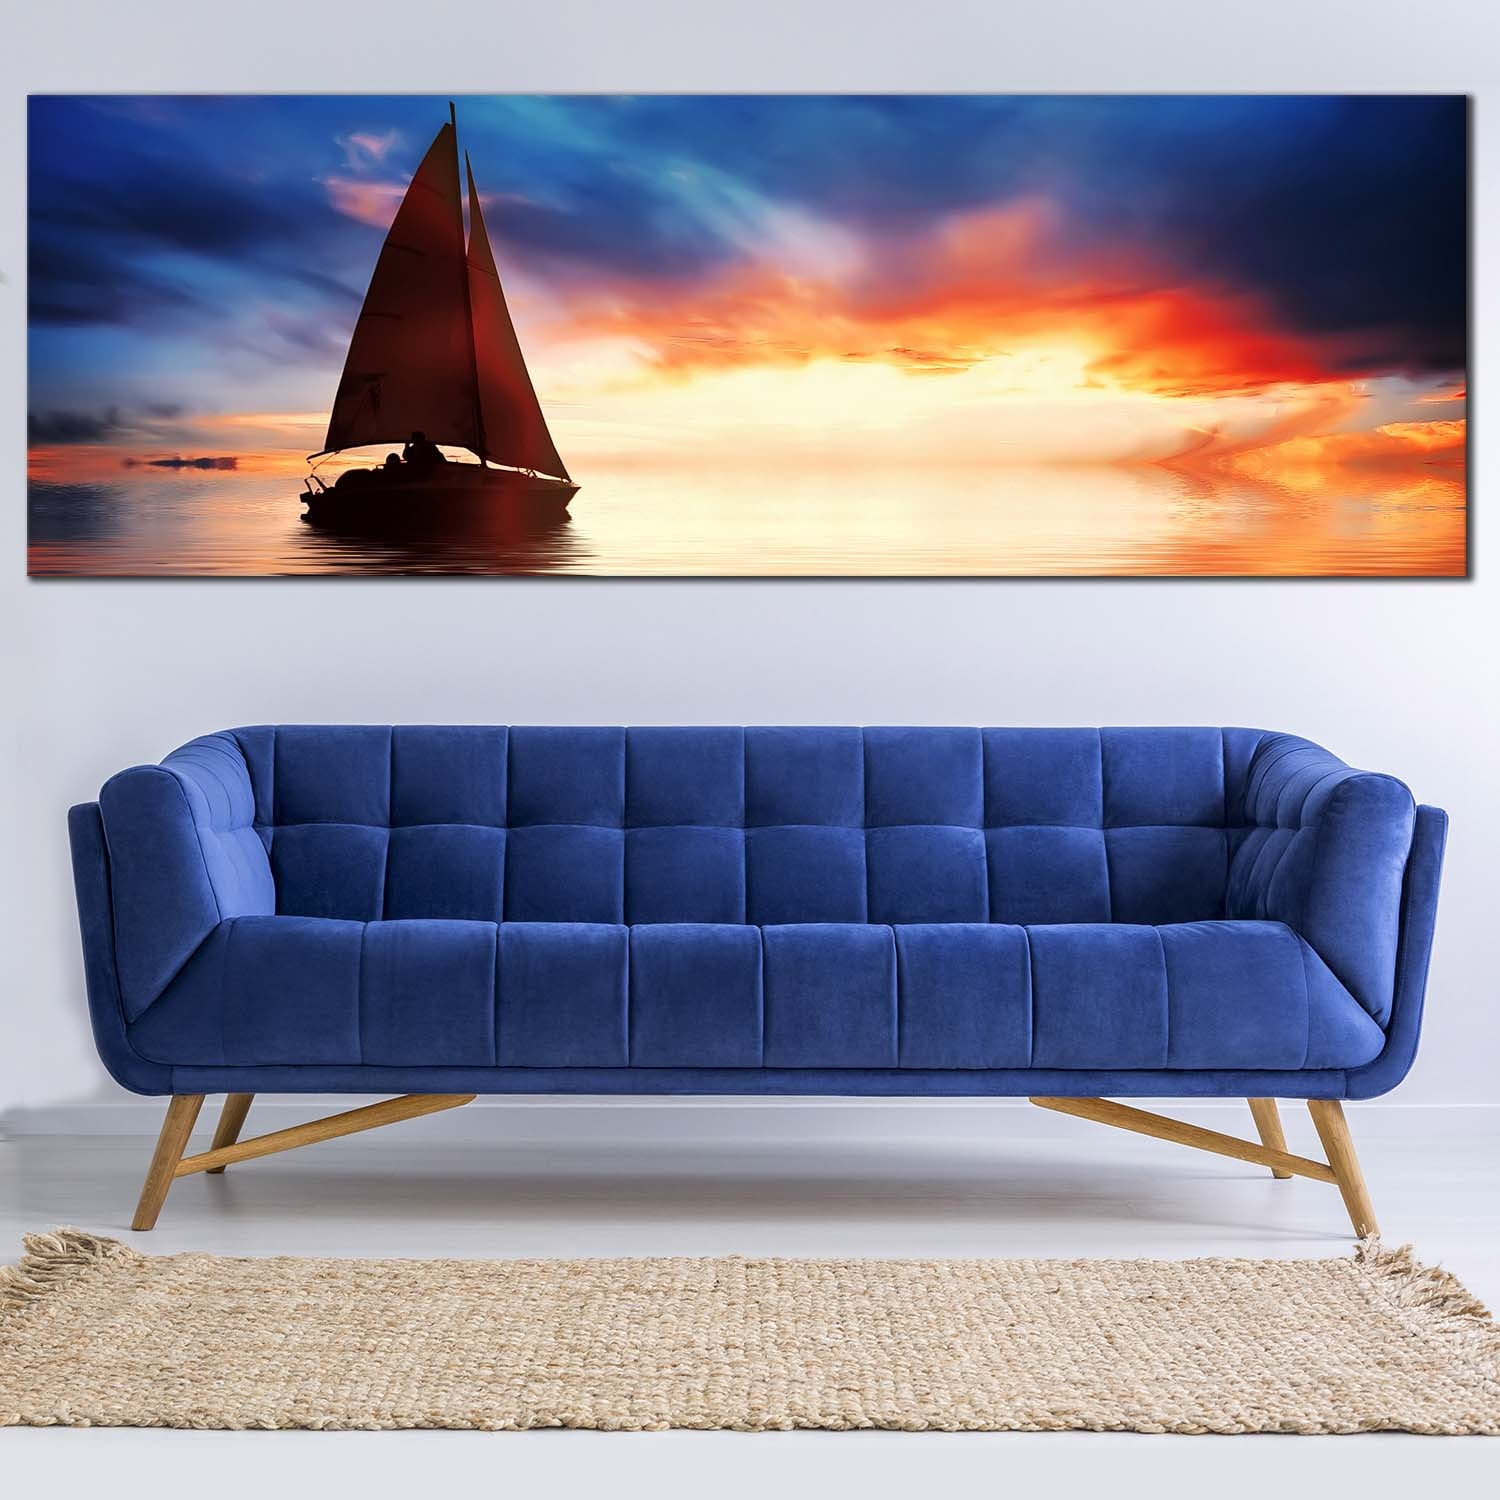 Sailing Boat Canvas Seascape Blue Sky Panorama Wall Art Picture Home Decor